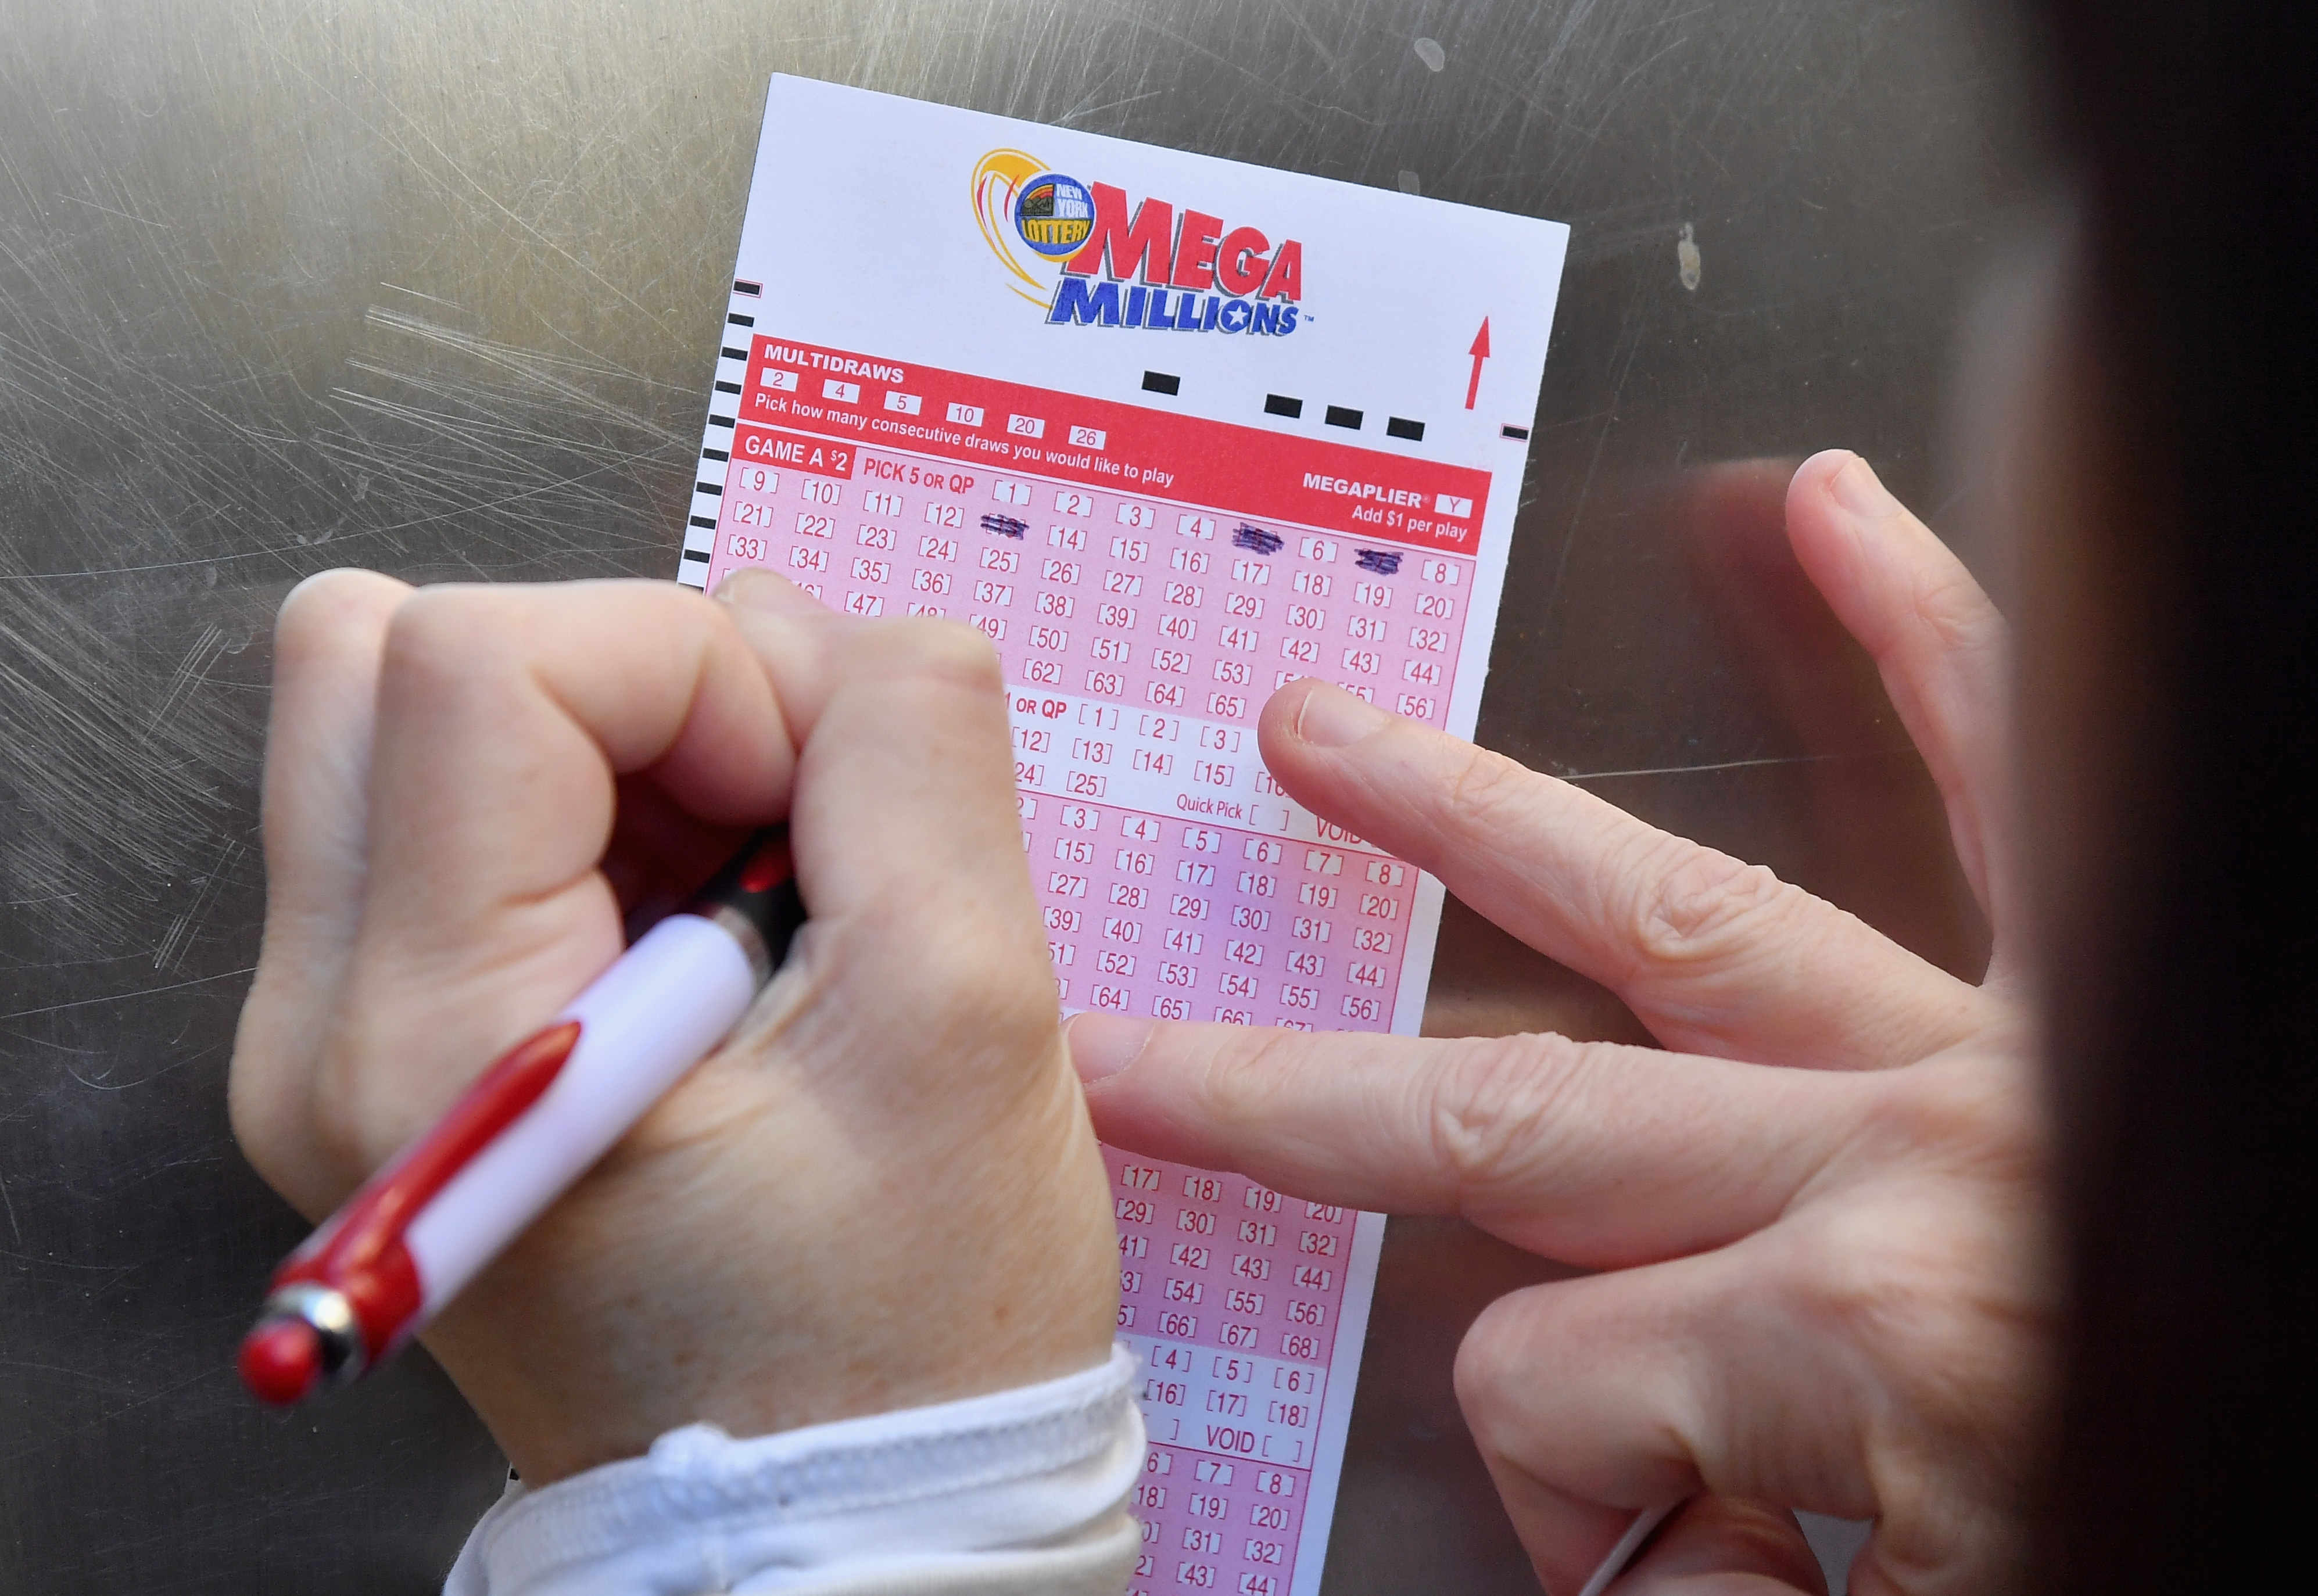 Want to win Mega Millions  $1.6 billion jackpot? Consider these 3 facts first.